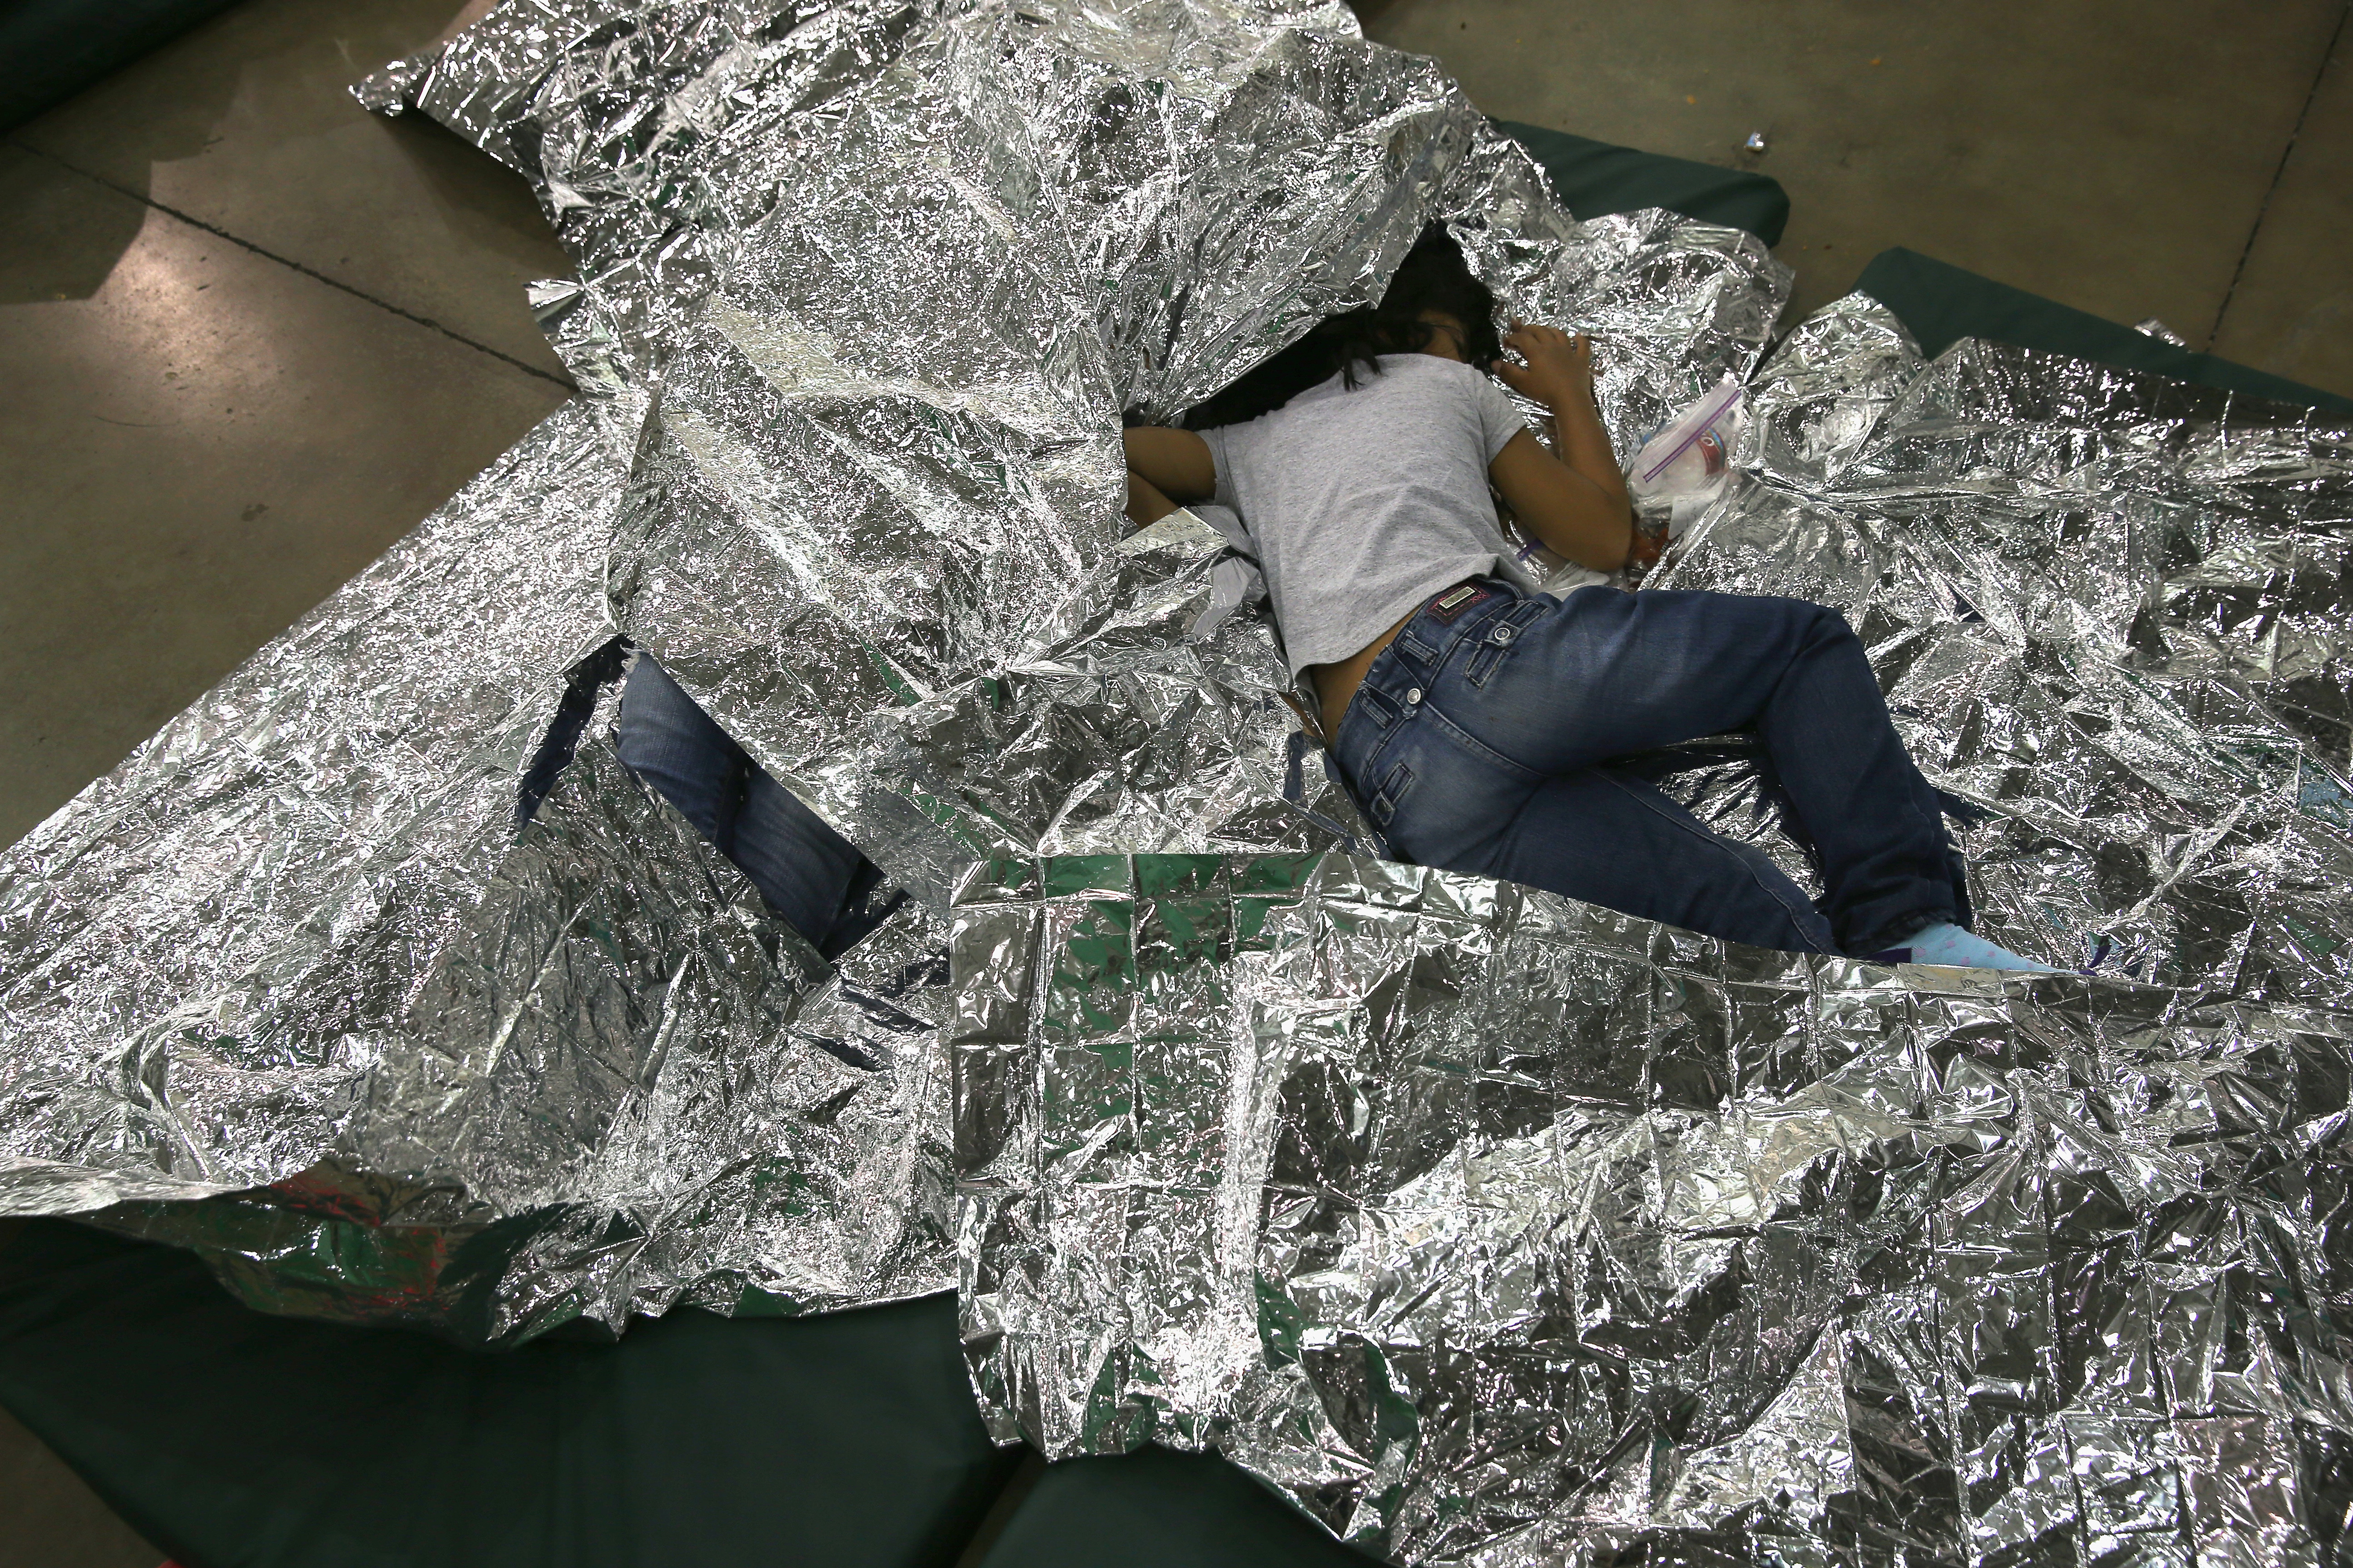 A girl from Central America rests on thermal blankets at a detention facility run by the U.S. Border Patro in McAllen, Texasl on Sept. 8, 2014.